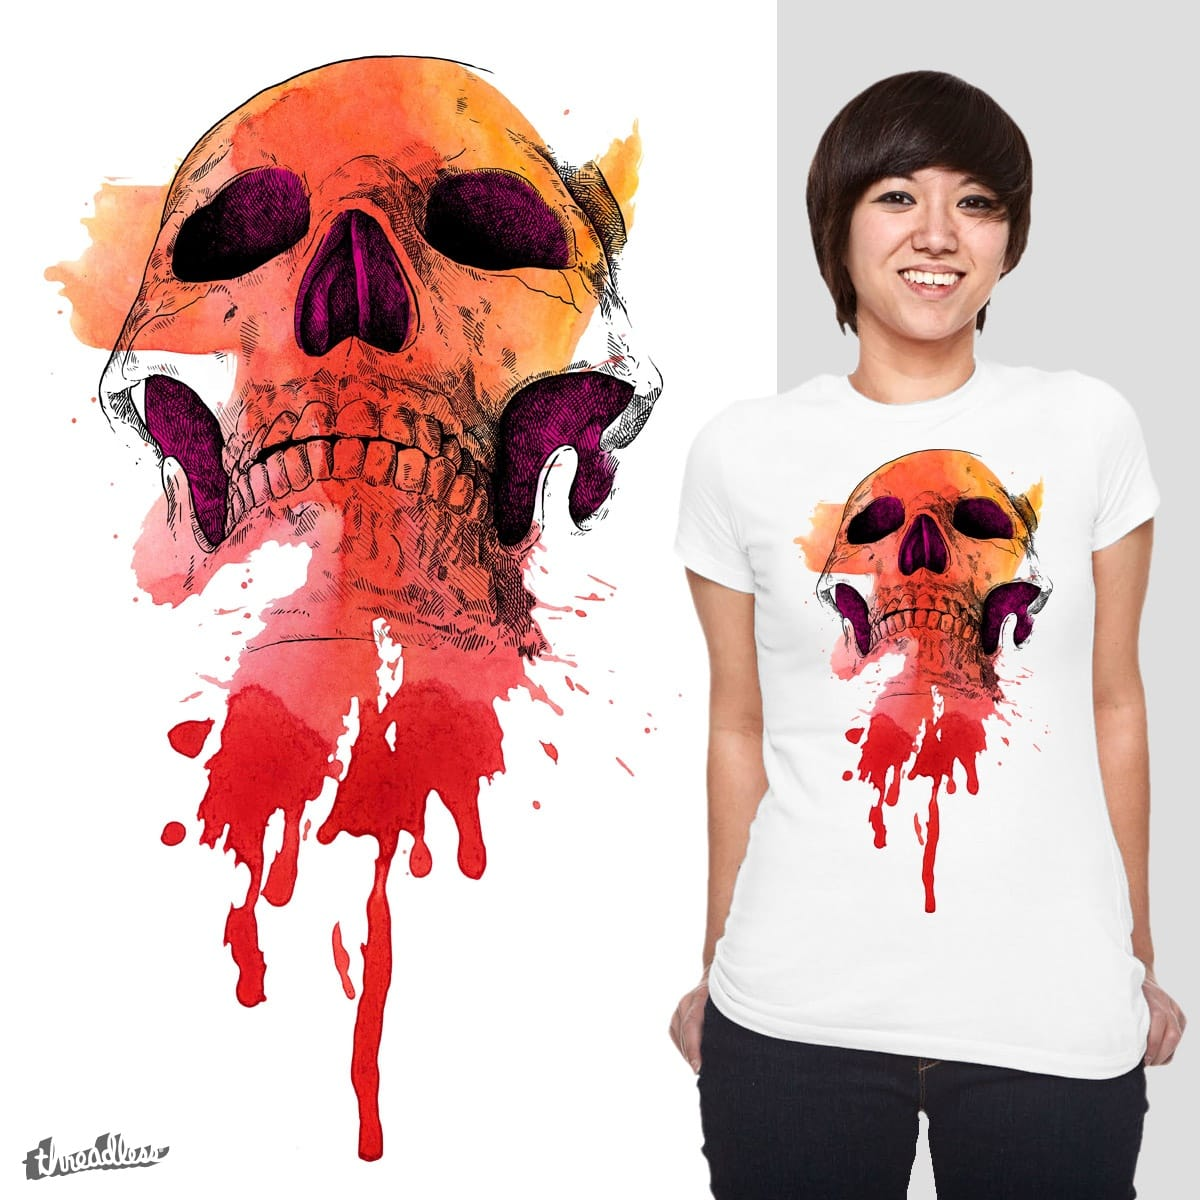 Vanitas by Quequito on Threadless